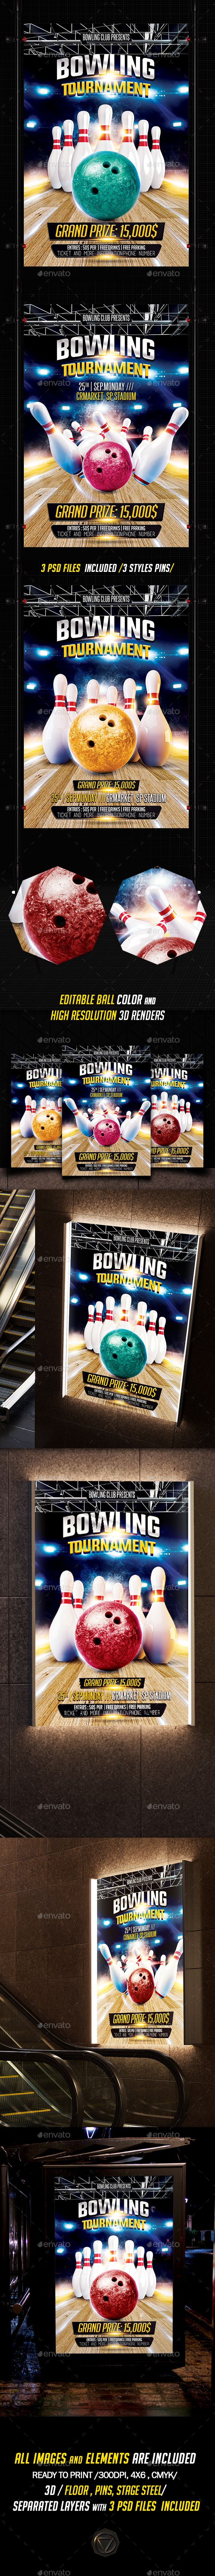 11 best Sports Flyers Posters Web images – Bowling Flyer Template